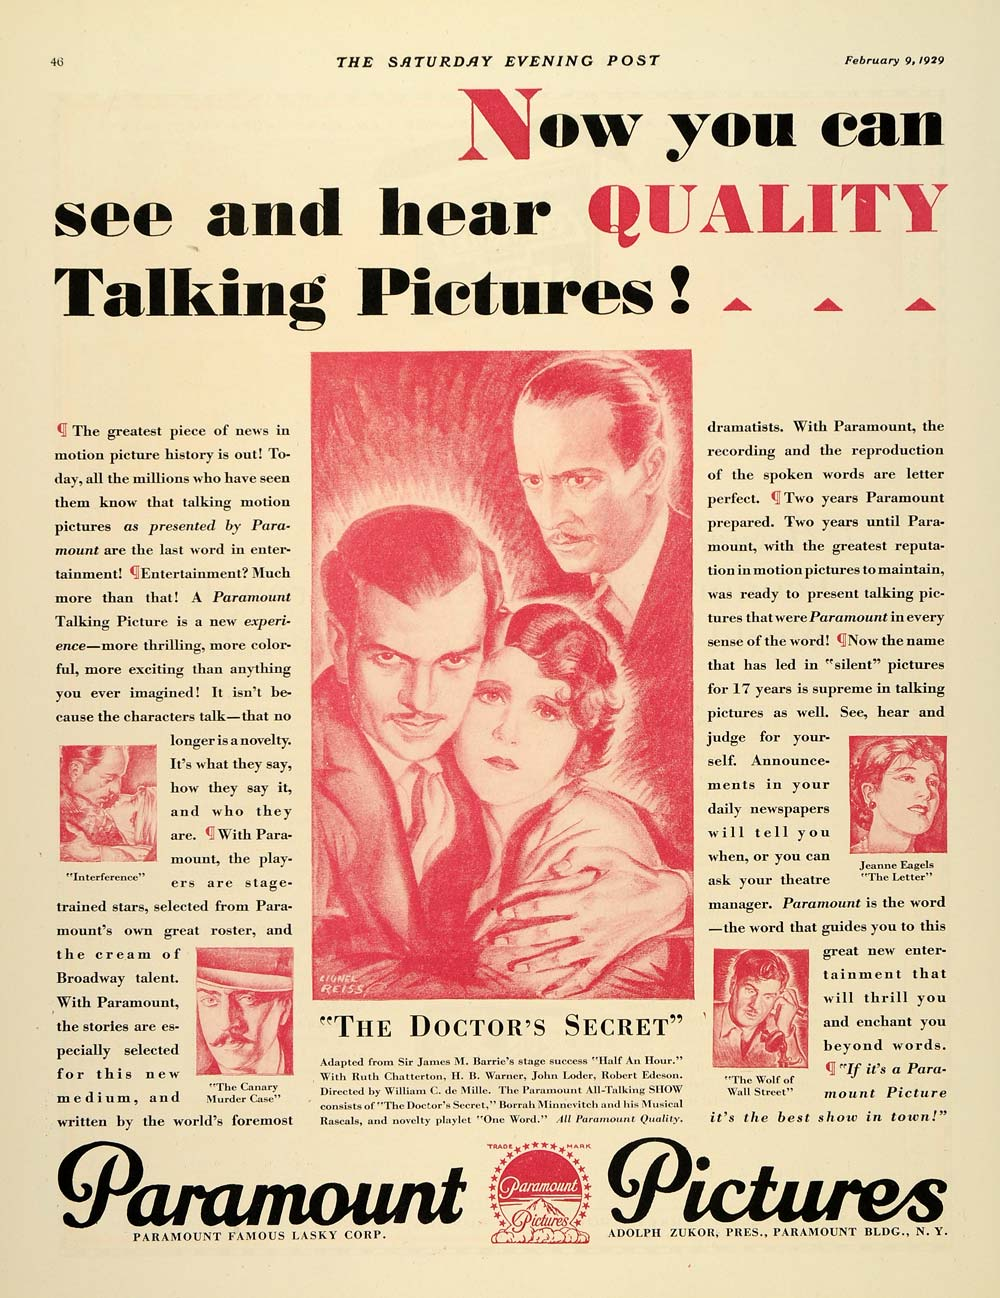 1929 Ad Paramount Pictures Doctors Secret Lionel Reiss - ORIGINAL SEP3